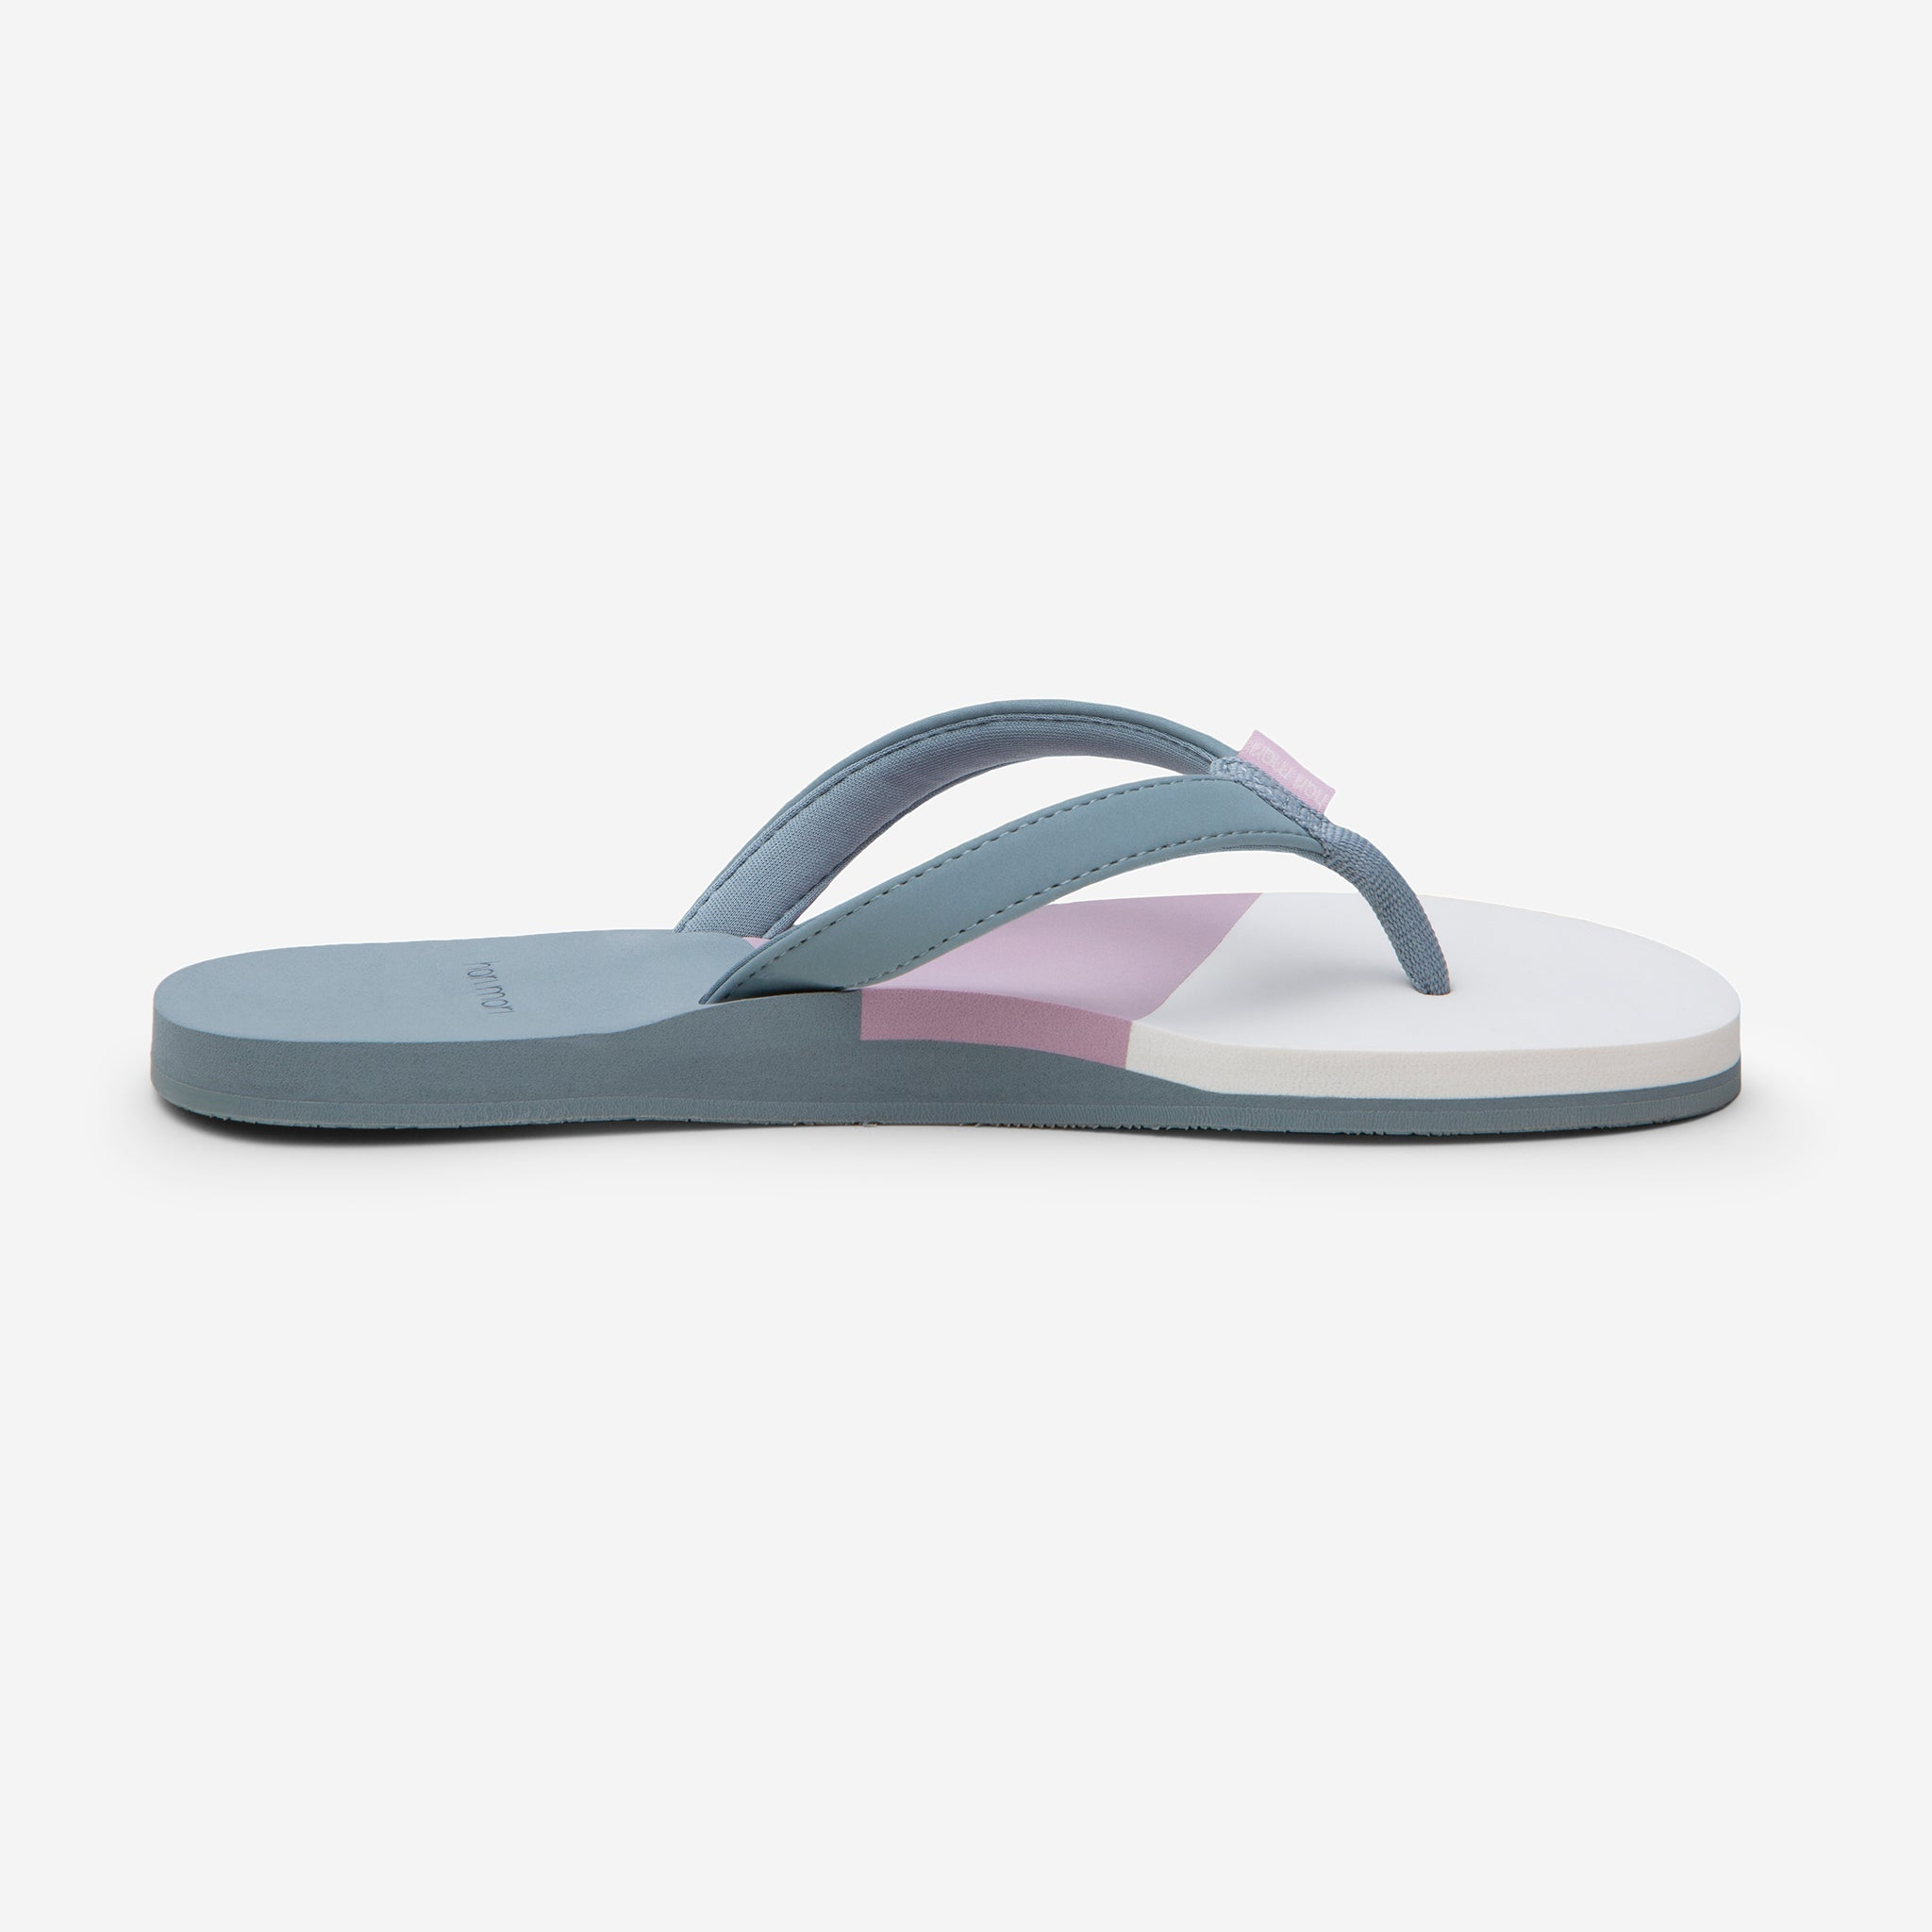 side profile of Hari Mari Women's Meadows Asana Flip Flops in Lead/Lily/mauve on white background